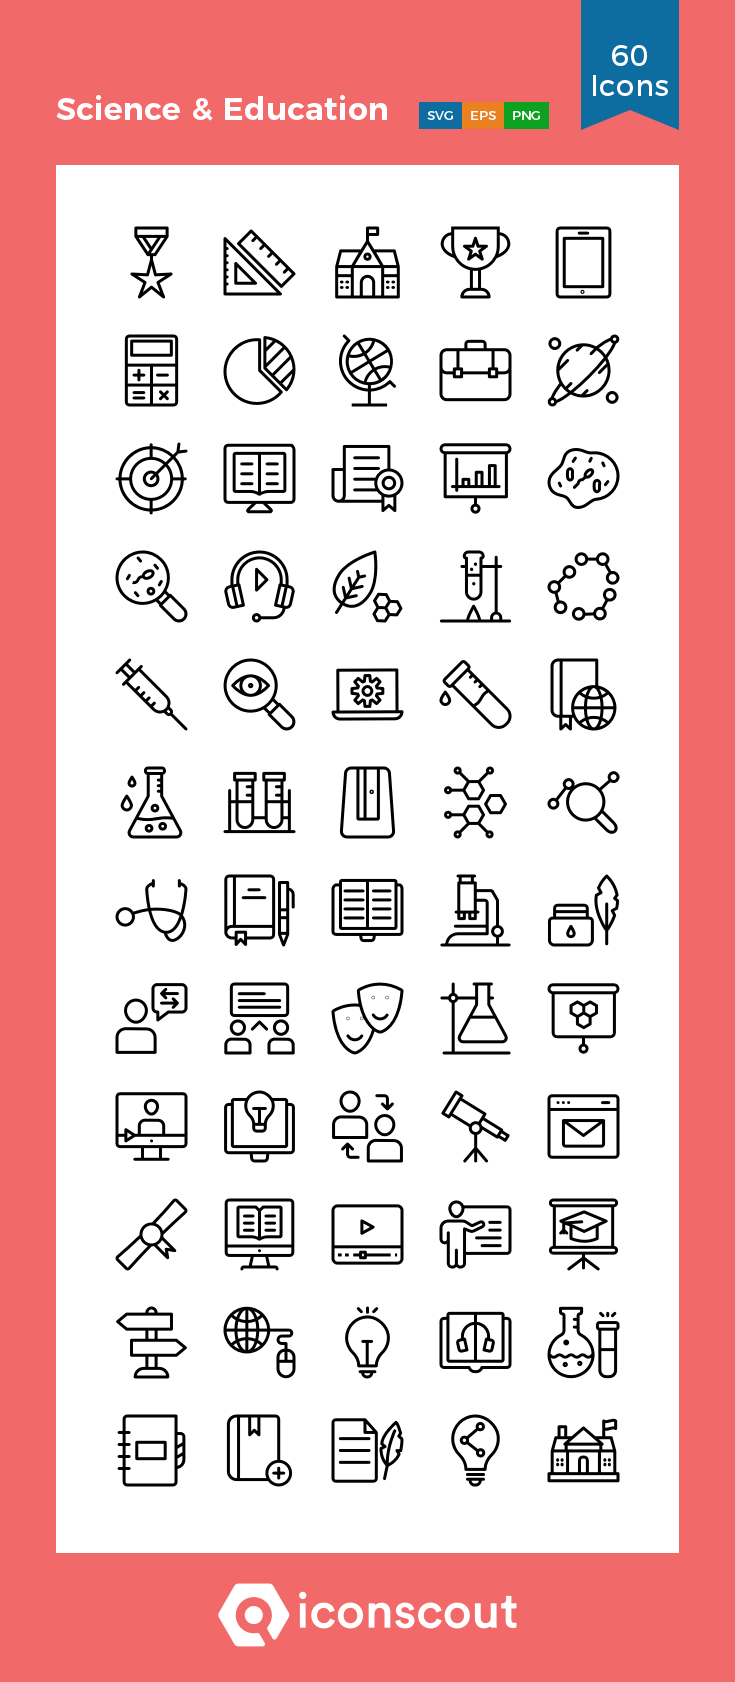 Download Science Education Icon Pack Available In Svg Png Eps Ai Icon Fonts Education Icon Science Education Icon